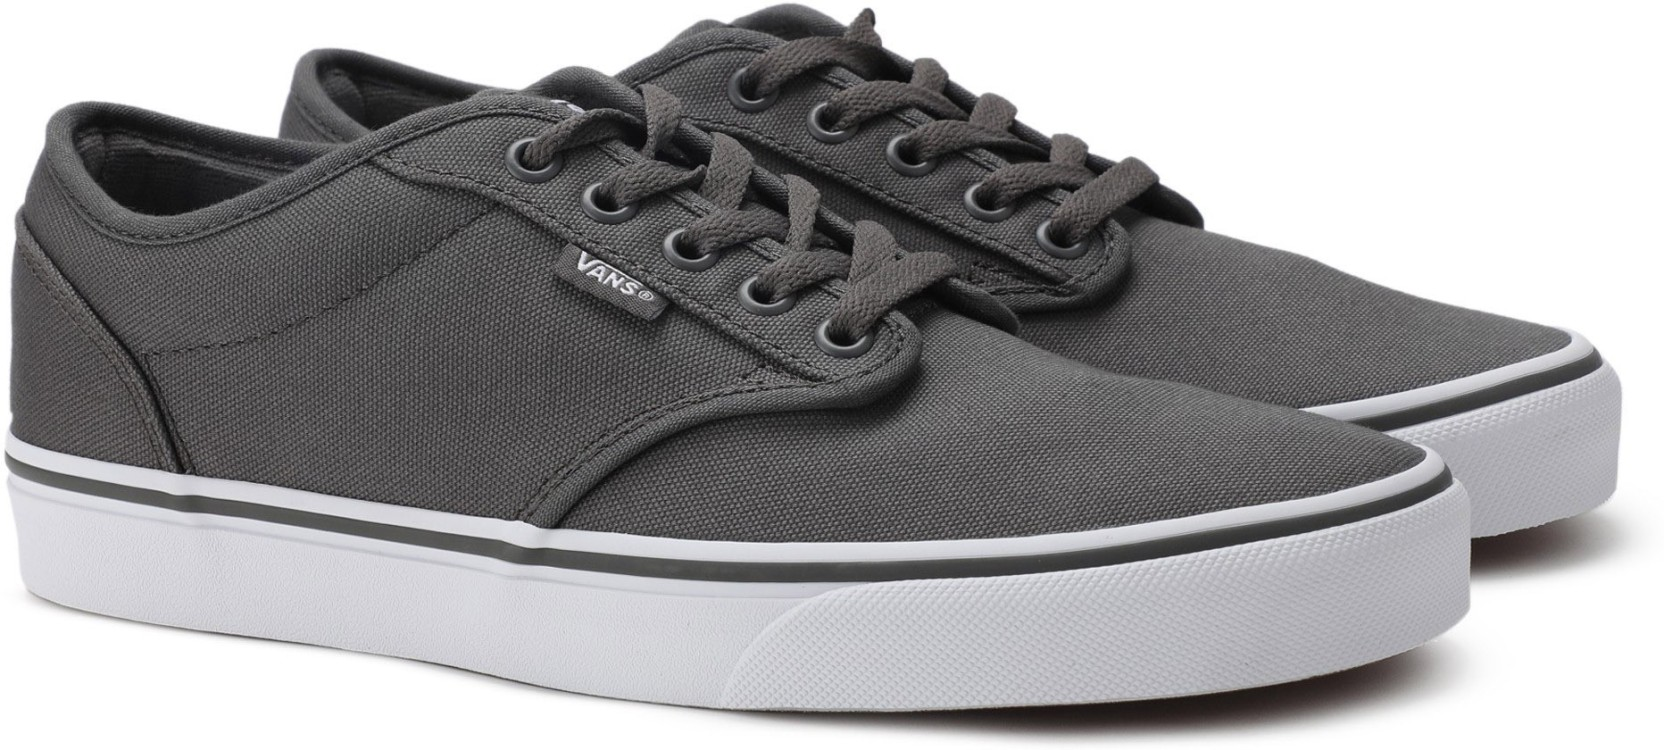 05bdd69a6cae77 Vans Atwood Sneakers For Men - Buy (Canvas) pewter white Color Vans ...